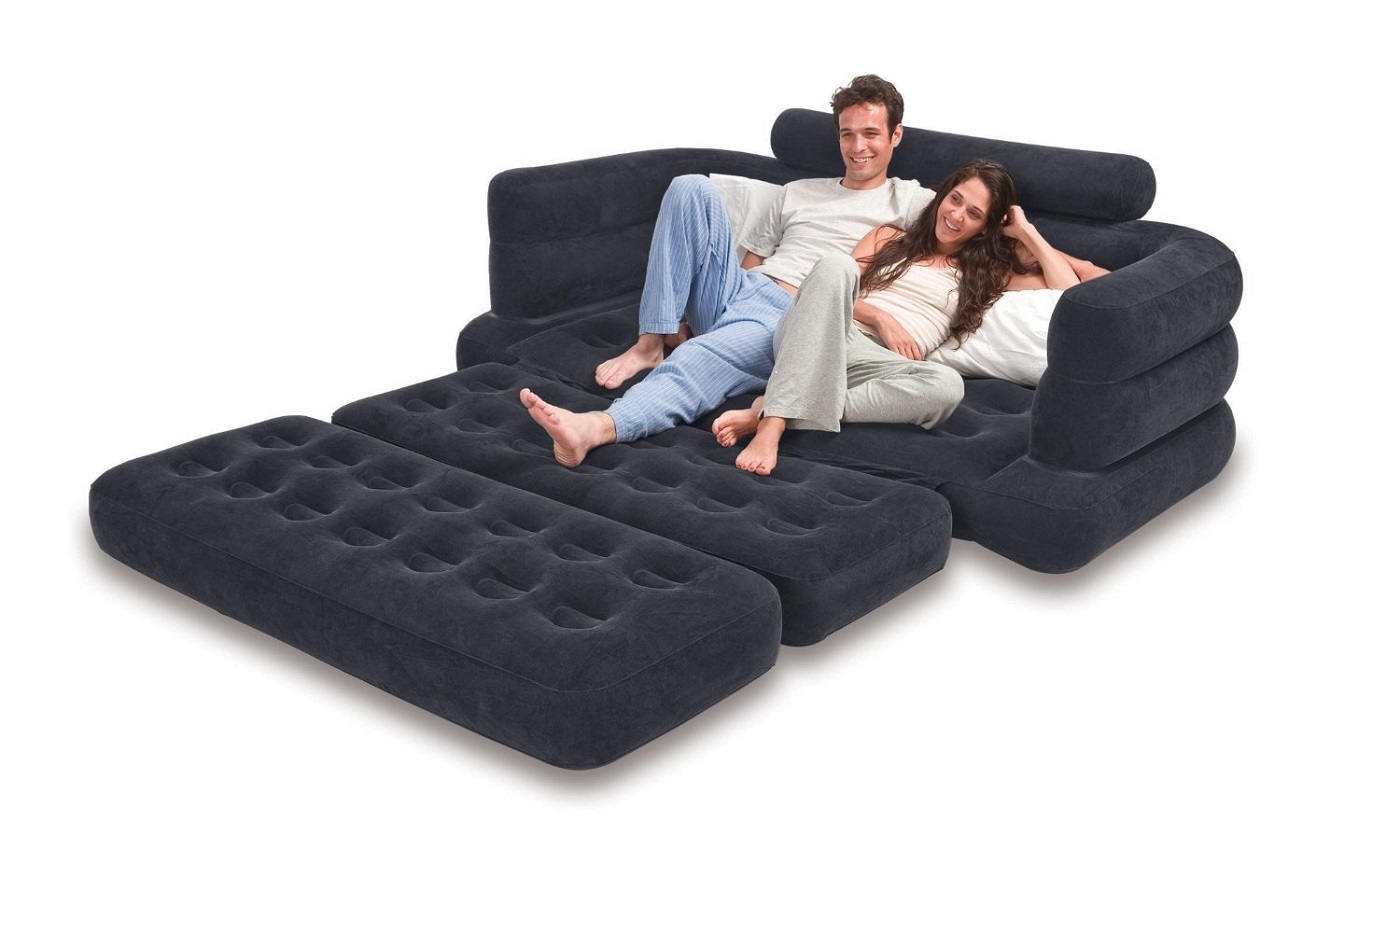 Pull_out_sofa_queen_bed_dorm_sleeper_futon_inflatable_air_couch ...